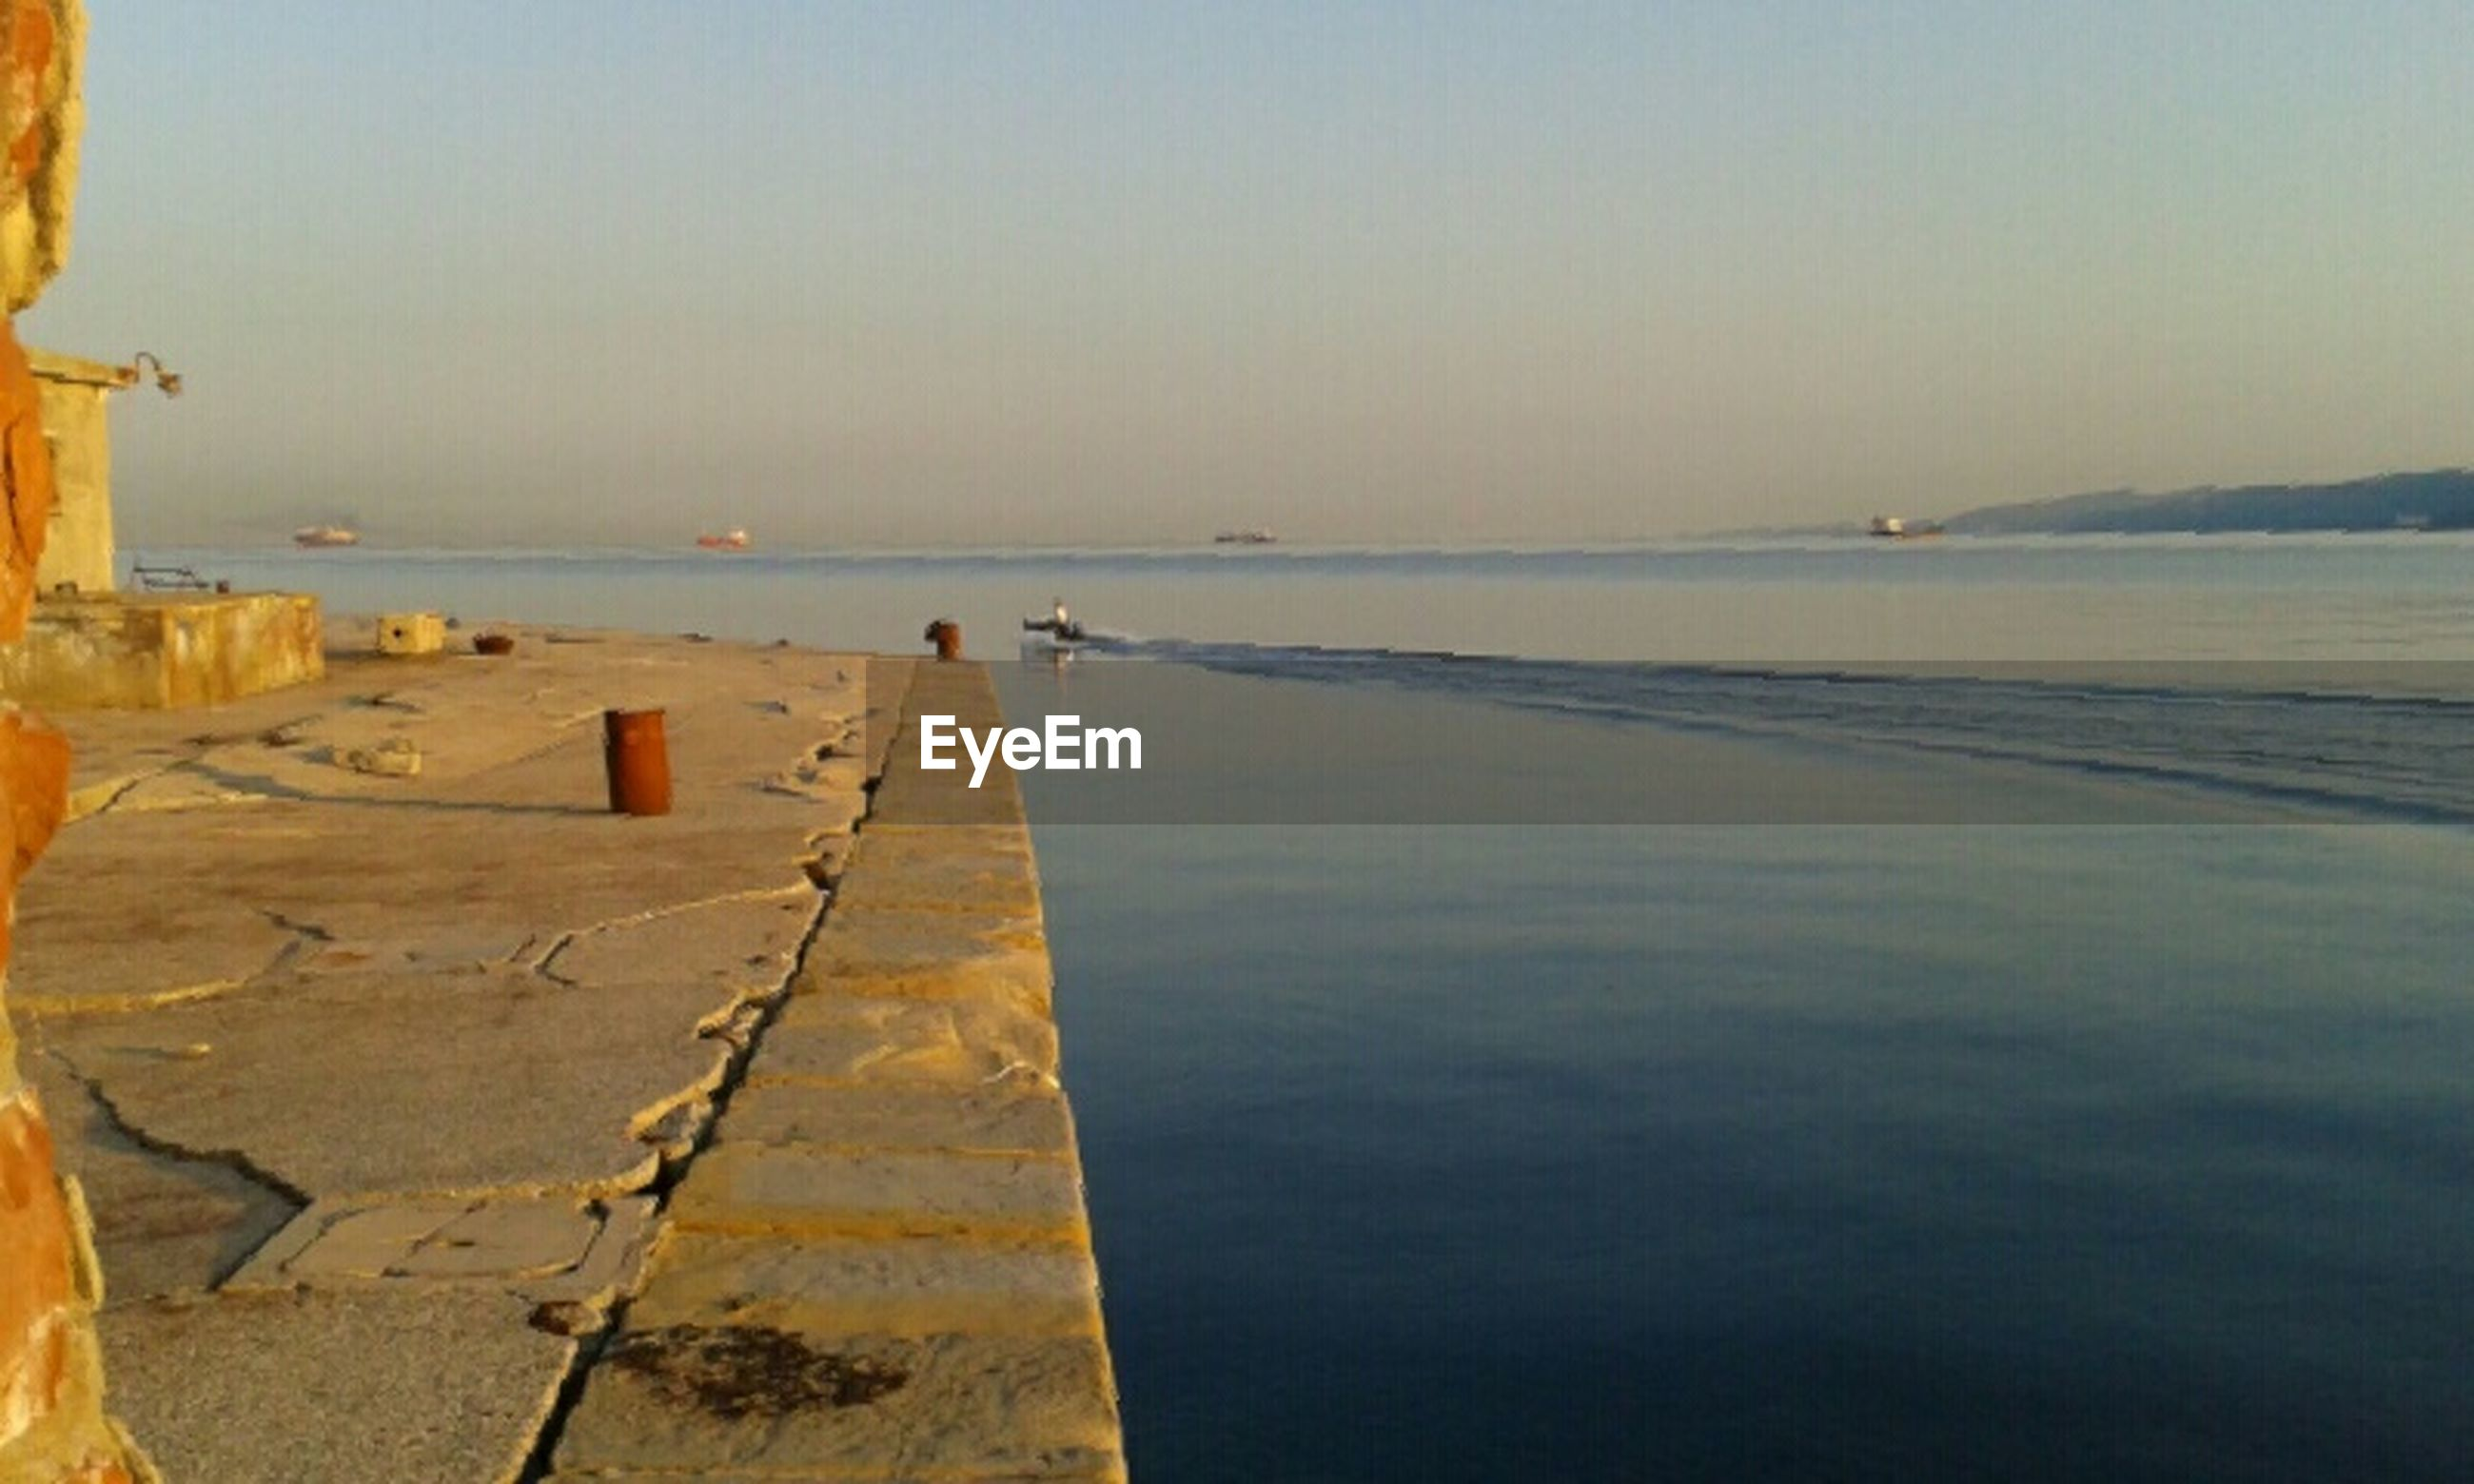 sea, water, horizon over water, beach, shore, clear sky, tranquility, tranquil scene, copy space, pier, scenics, sky, built structure, nature, beauty in nature, sand, incidental people, outdoors, idyllic, architecture